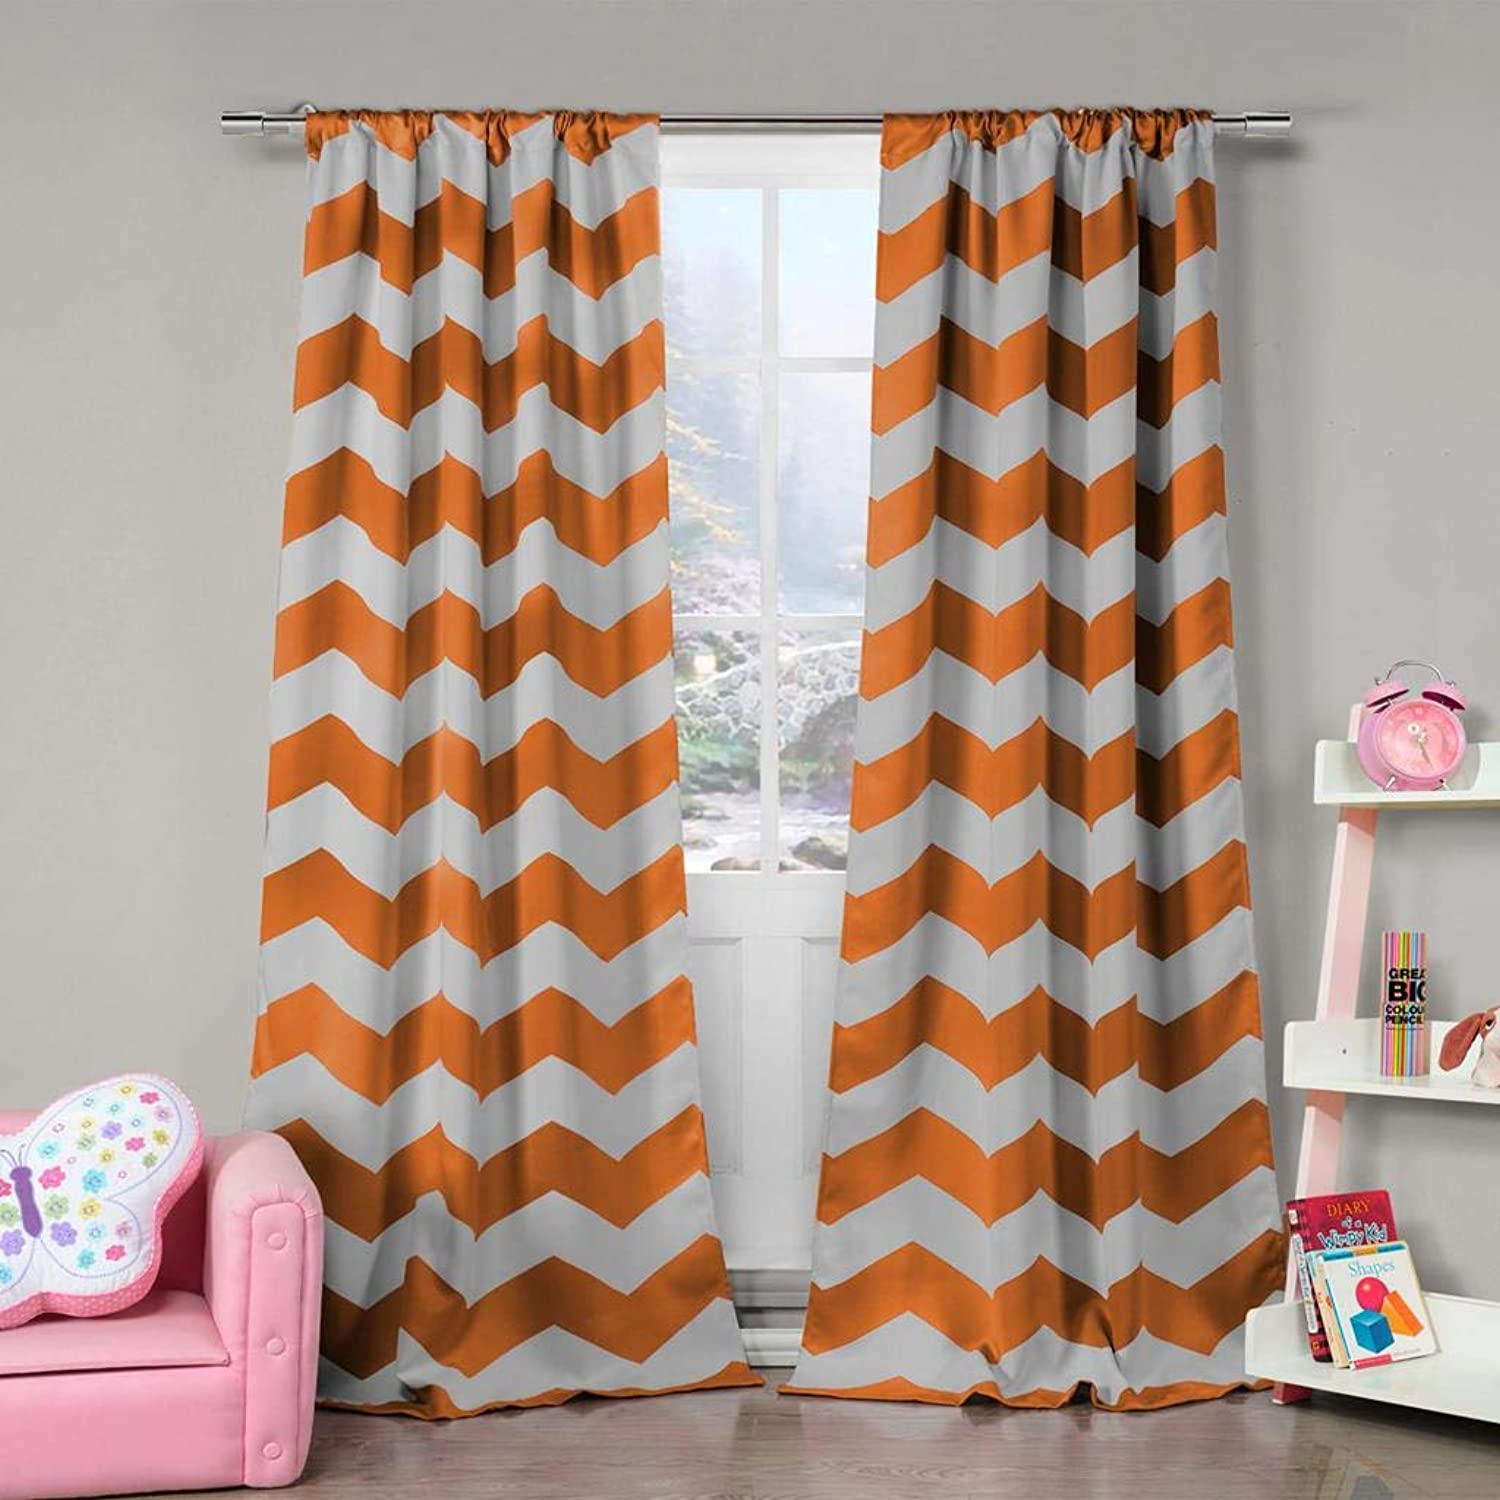 Duck River Textile Home Fashion Chevron Stripe Printed Blackout Darkening Pole Top Window Curtains Pair Drapes for Bedroom, Living Room-Set of 2 Panels, 39 X 84, orange